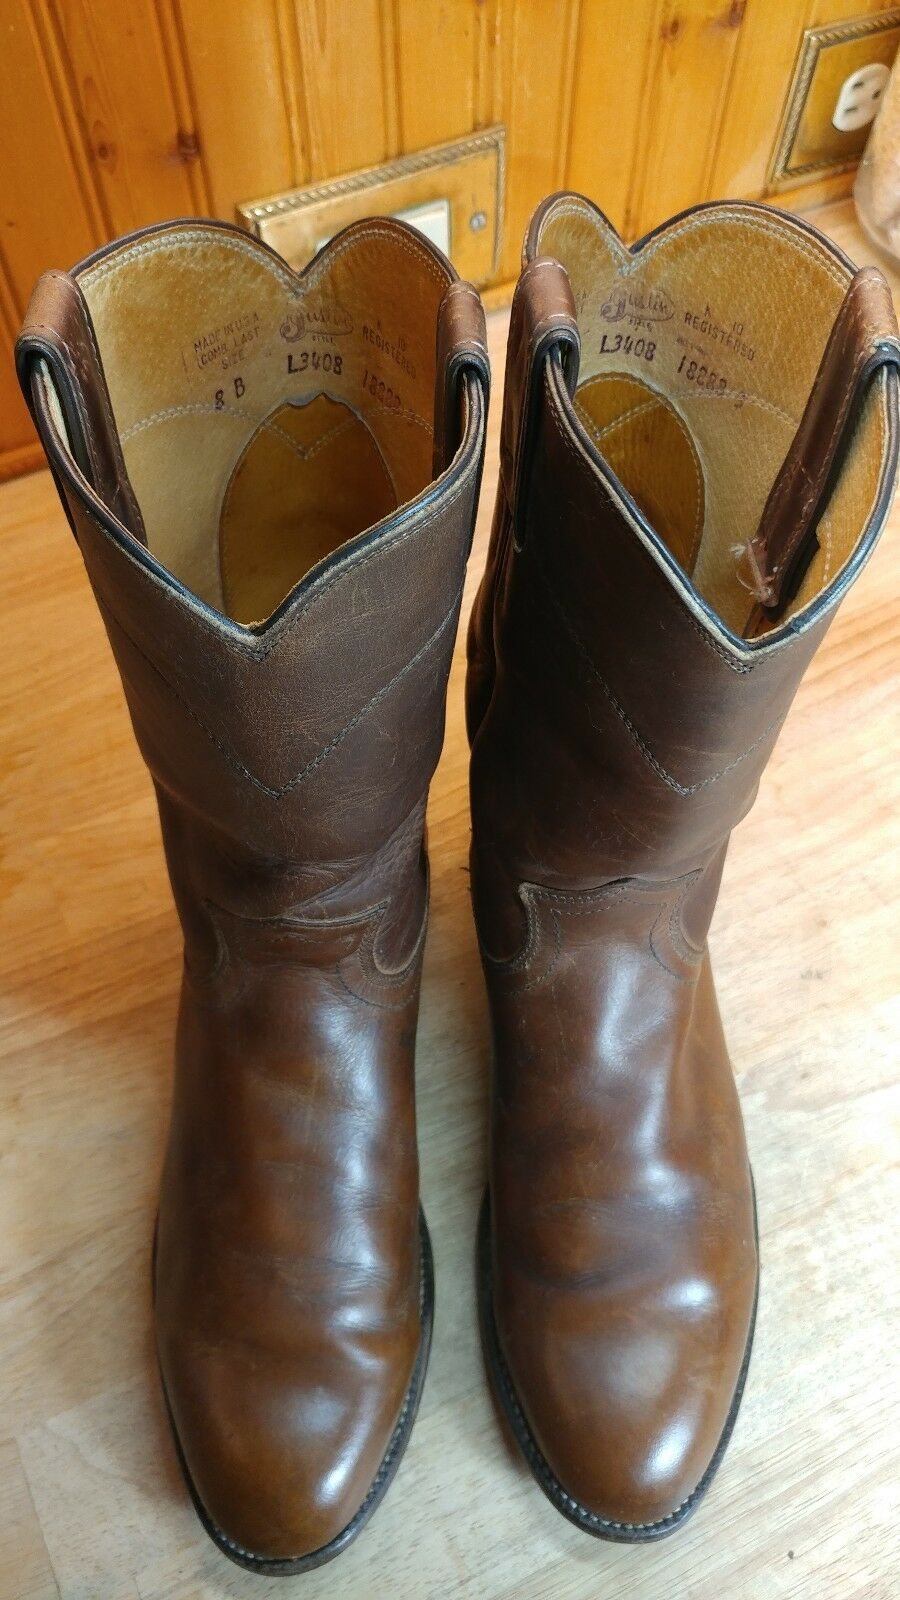 WOMENS JUSTIN L3408 BROWN OILED LEATHER ROPER COWBOY WESTERN BOOTS SZ 8B